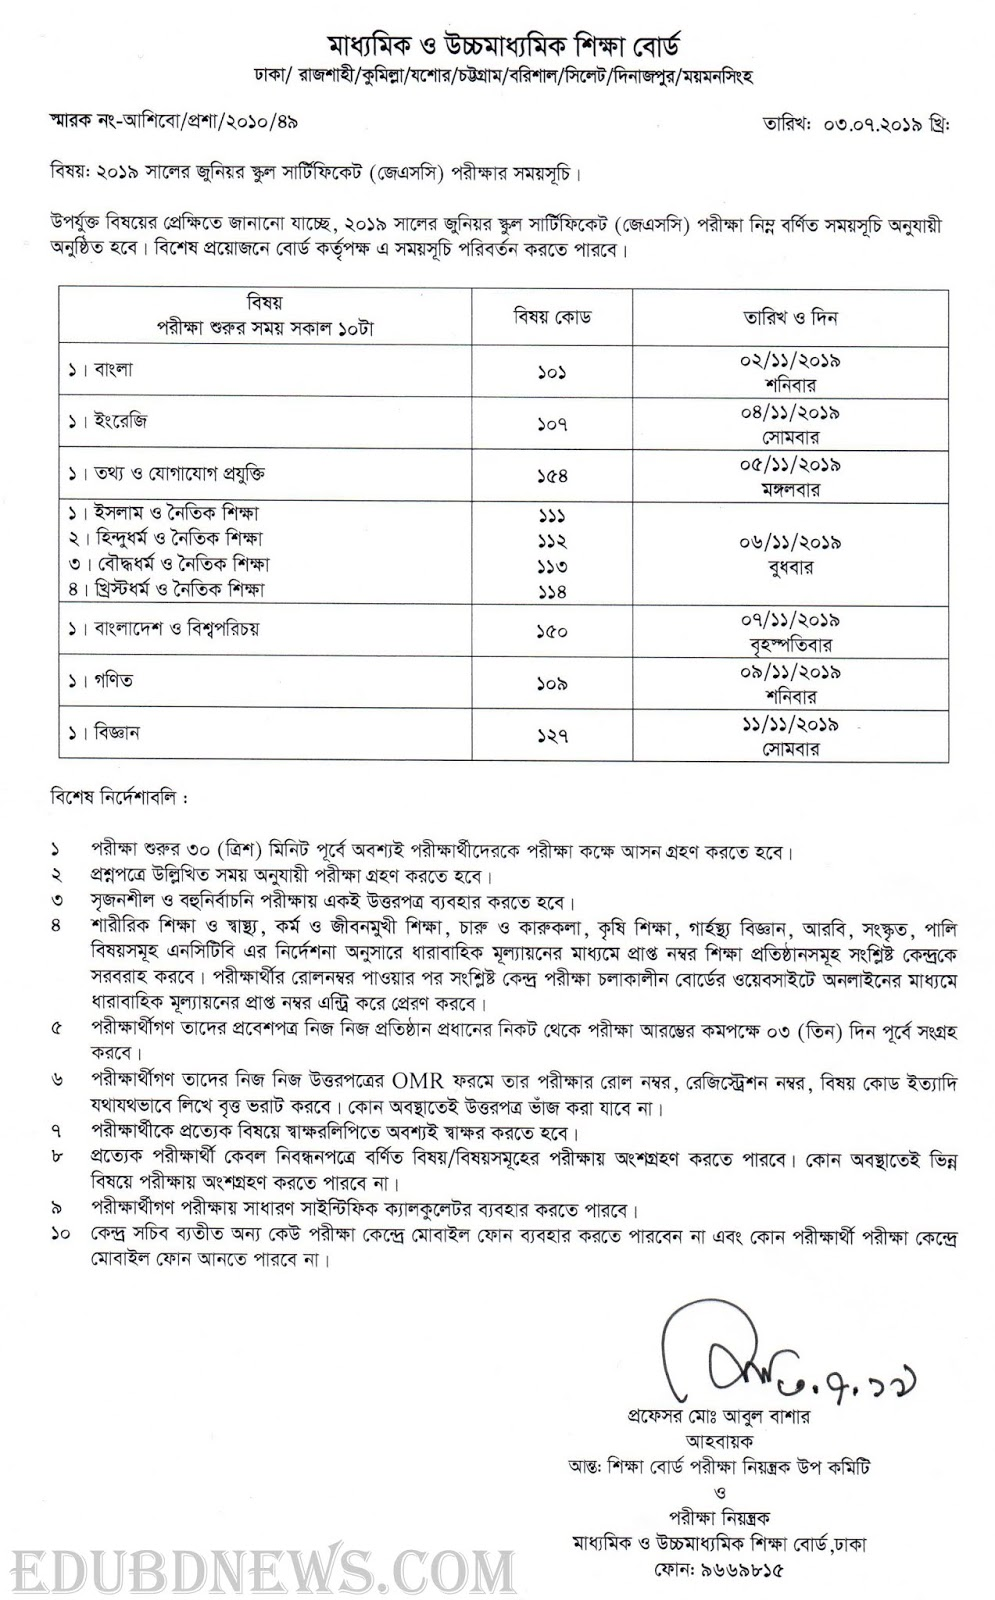 JSC Exam Routine 2019 DOWNLOAD